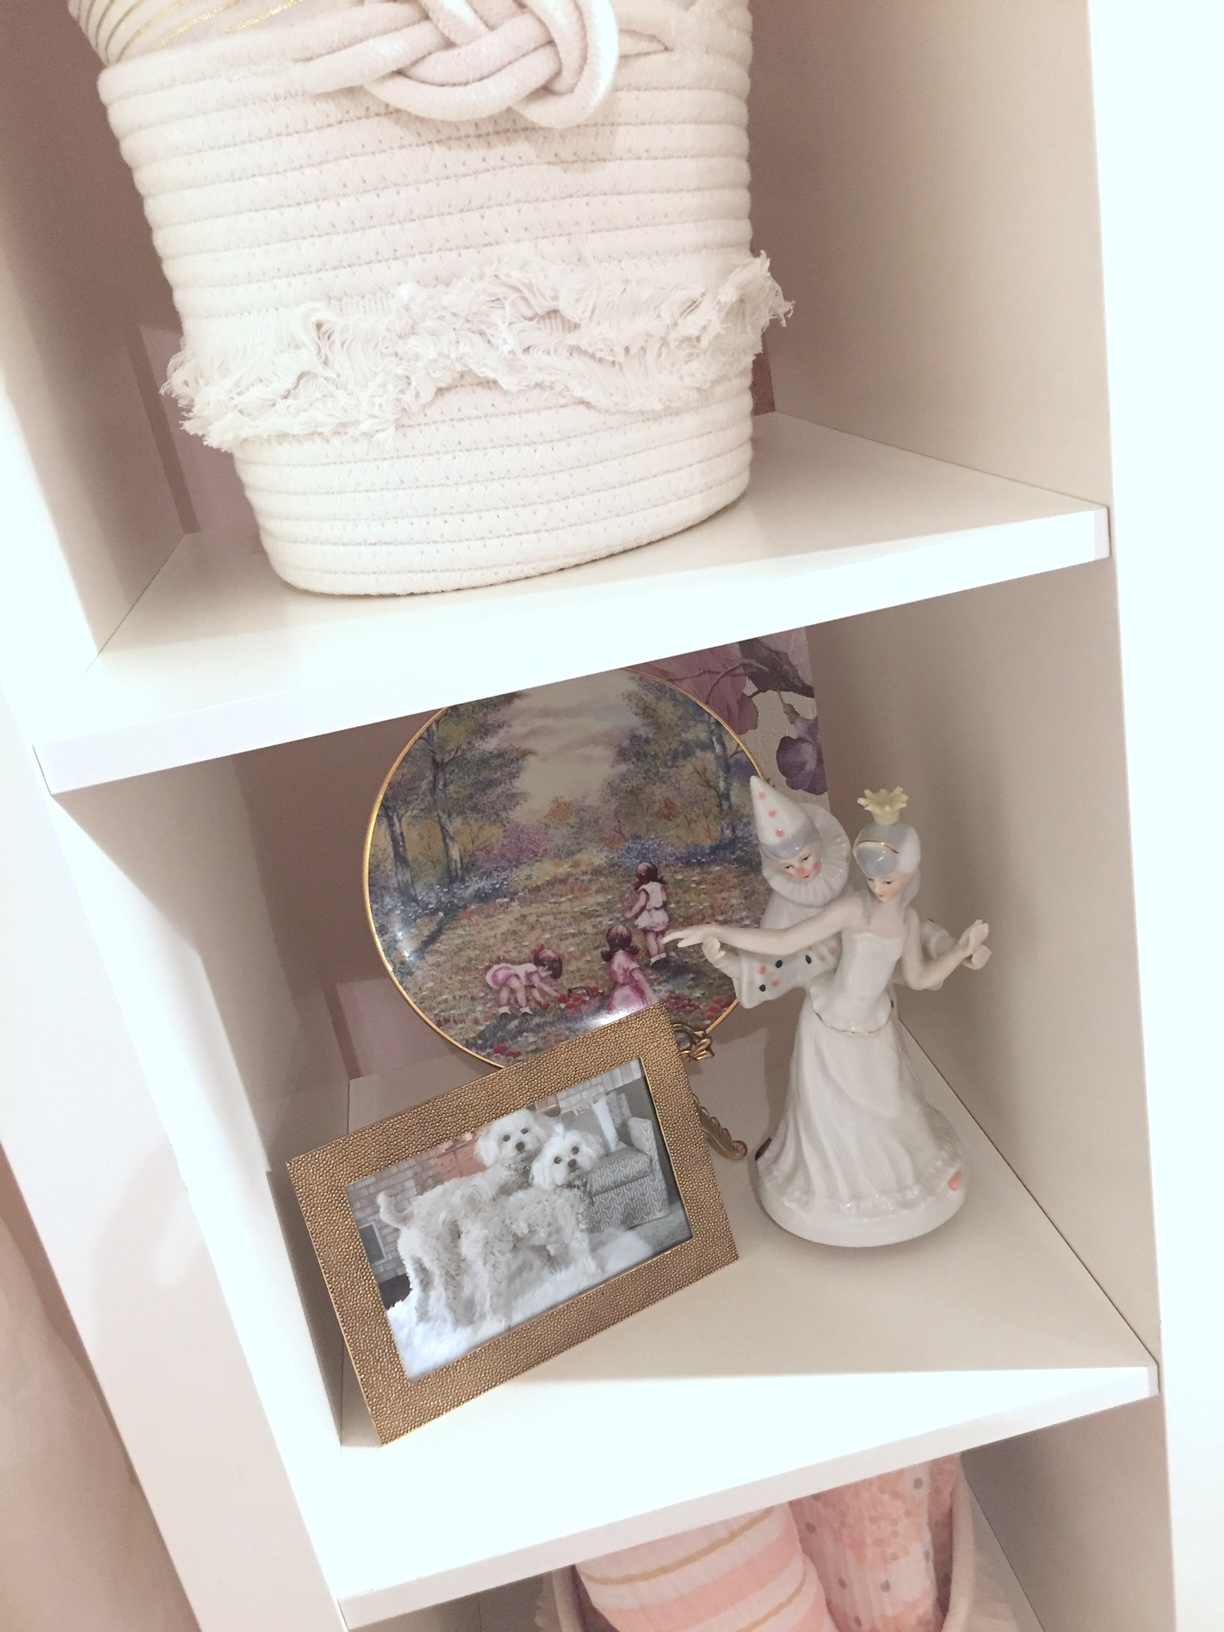 A shelf of memories holds a special plate that was given to my Mom when I was born and a music box figure that was given to me by my Aunt. Always find a way to add in the person details that make a space special.